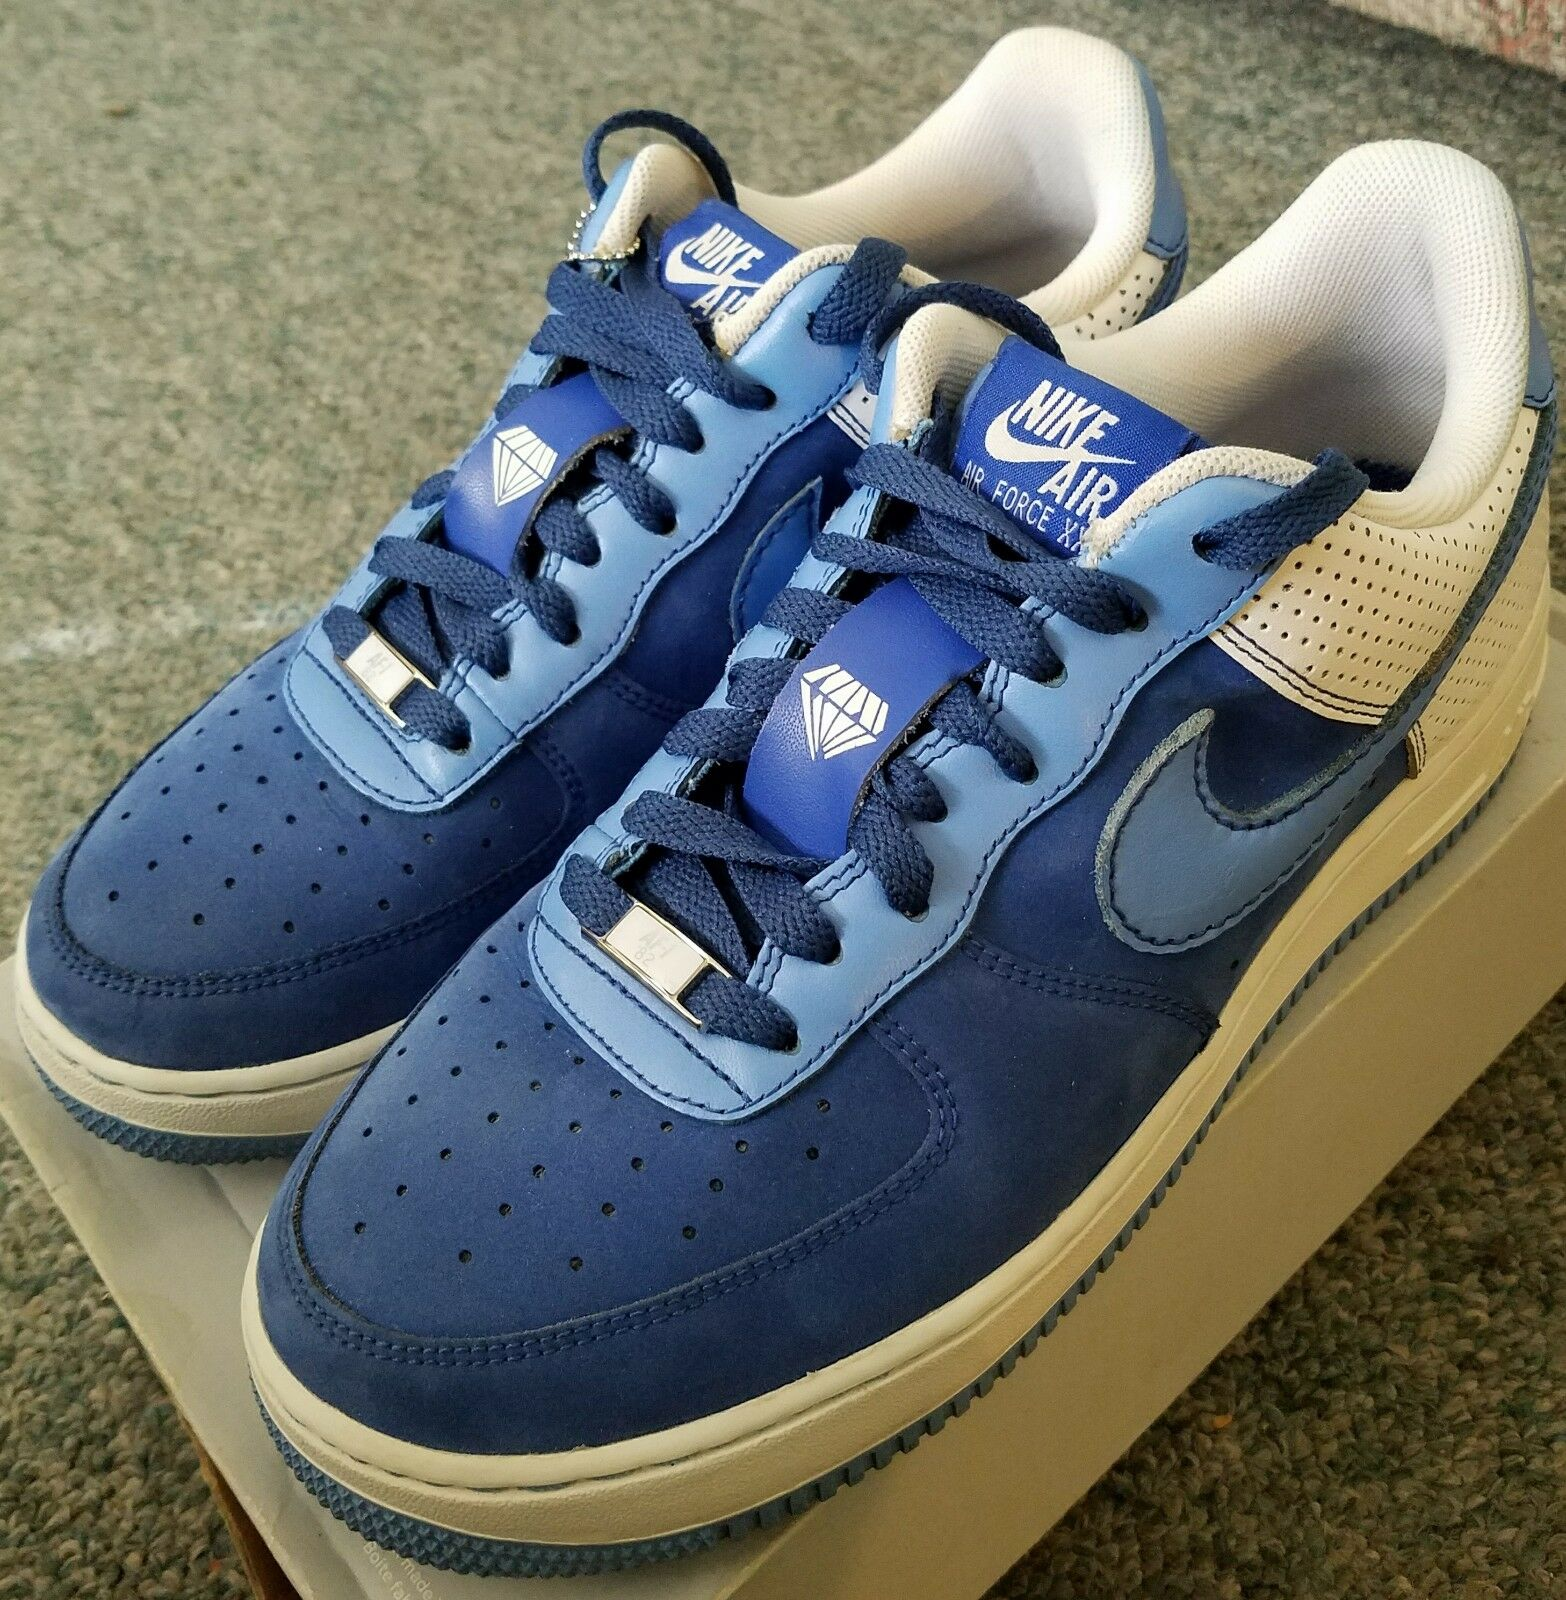 2007 Nike Air Force 1 Uomo 9.5 Diamond Supply collaboration, Extremely clean!